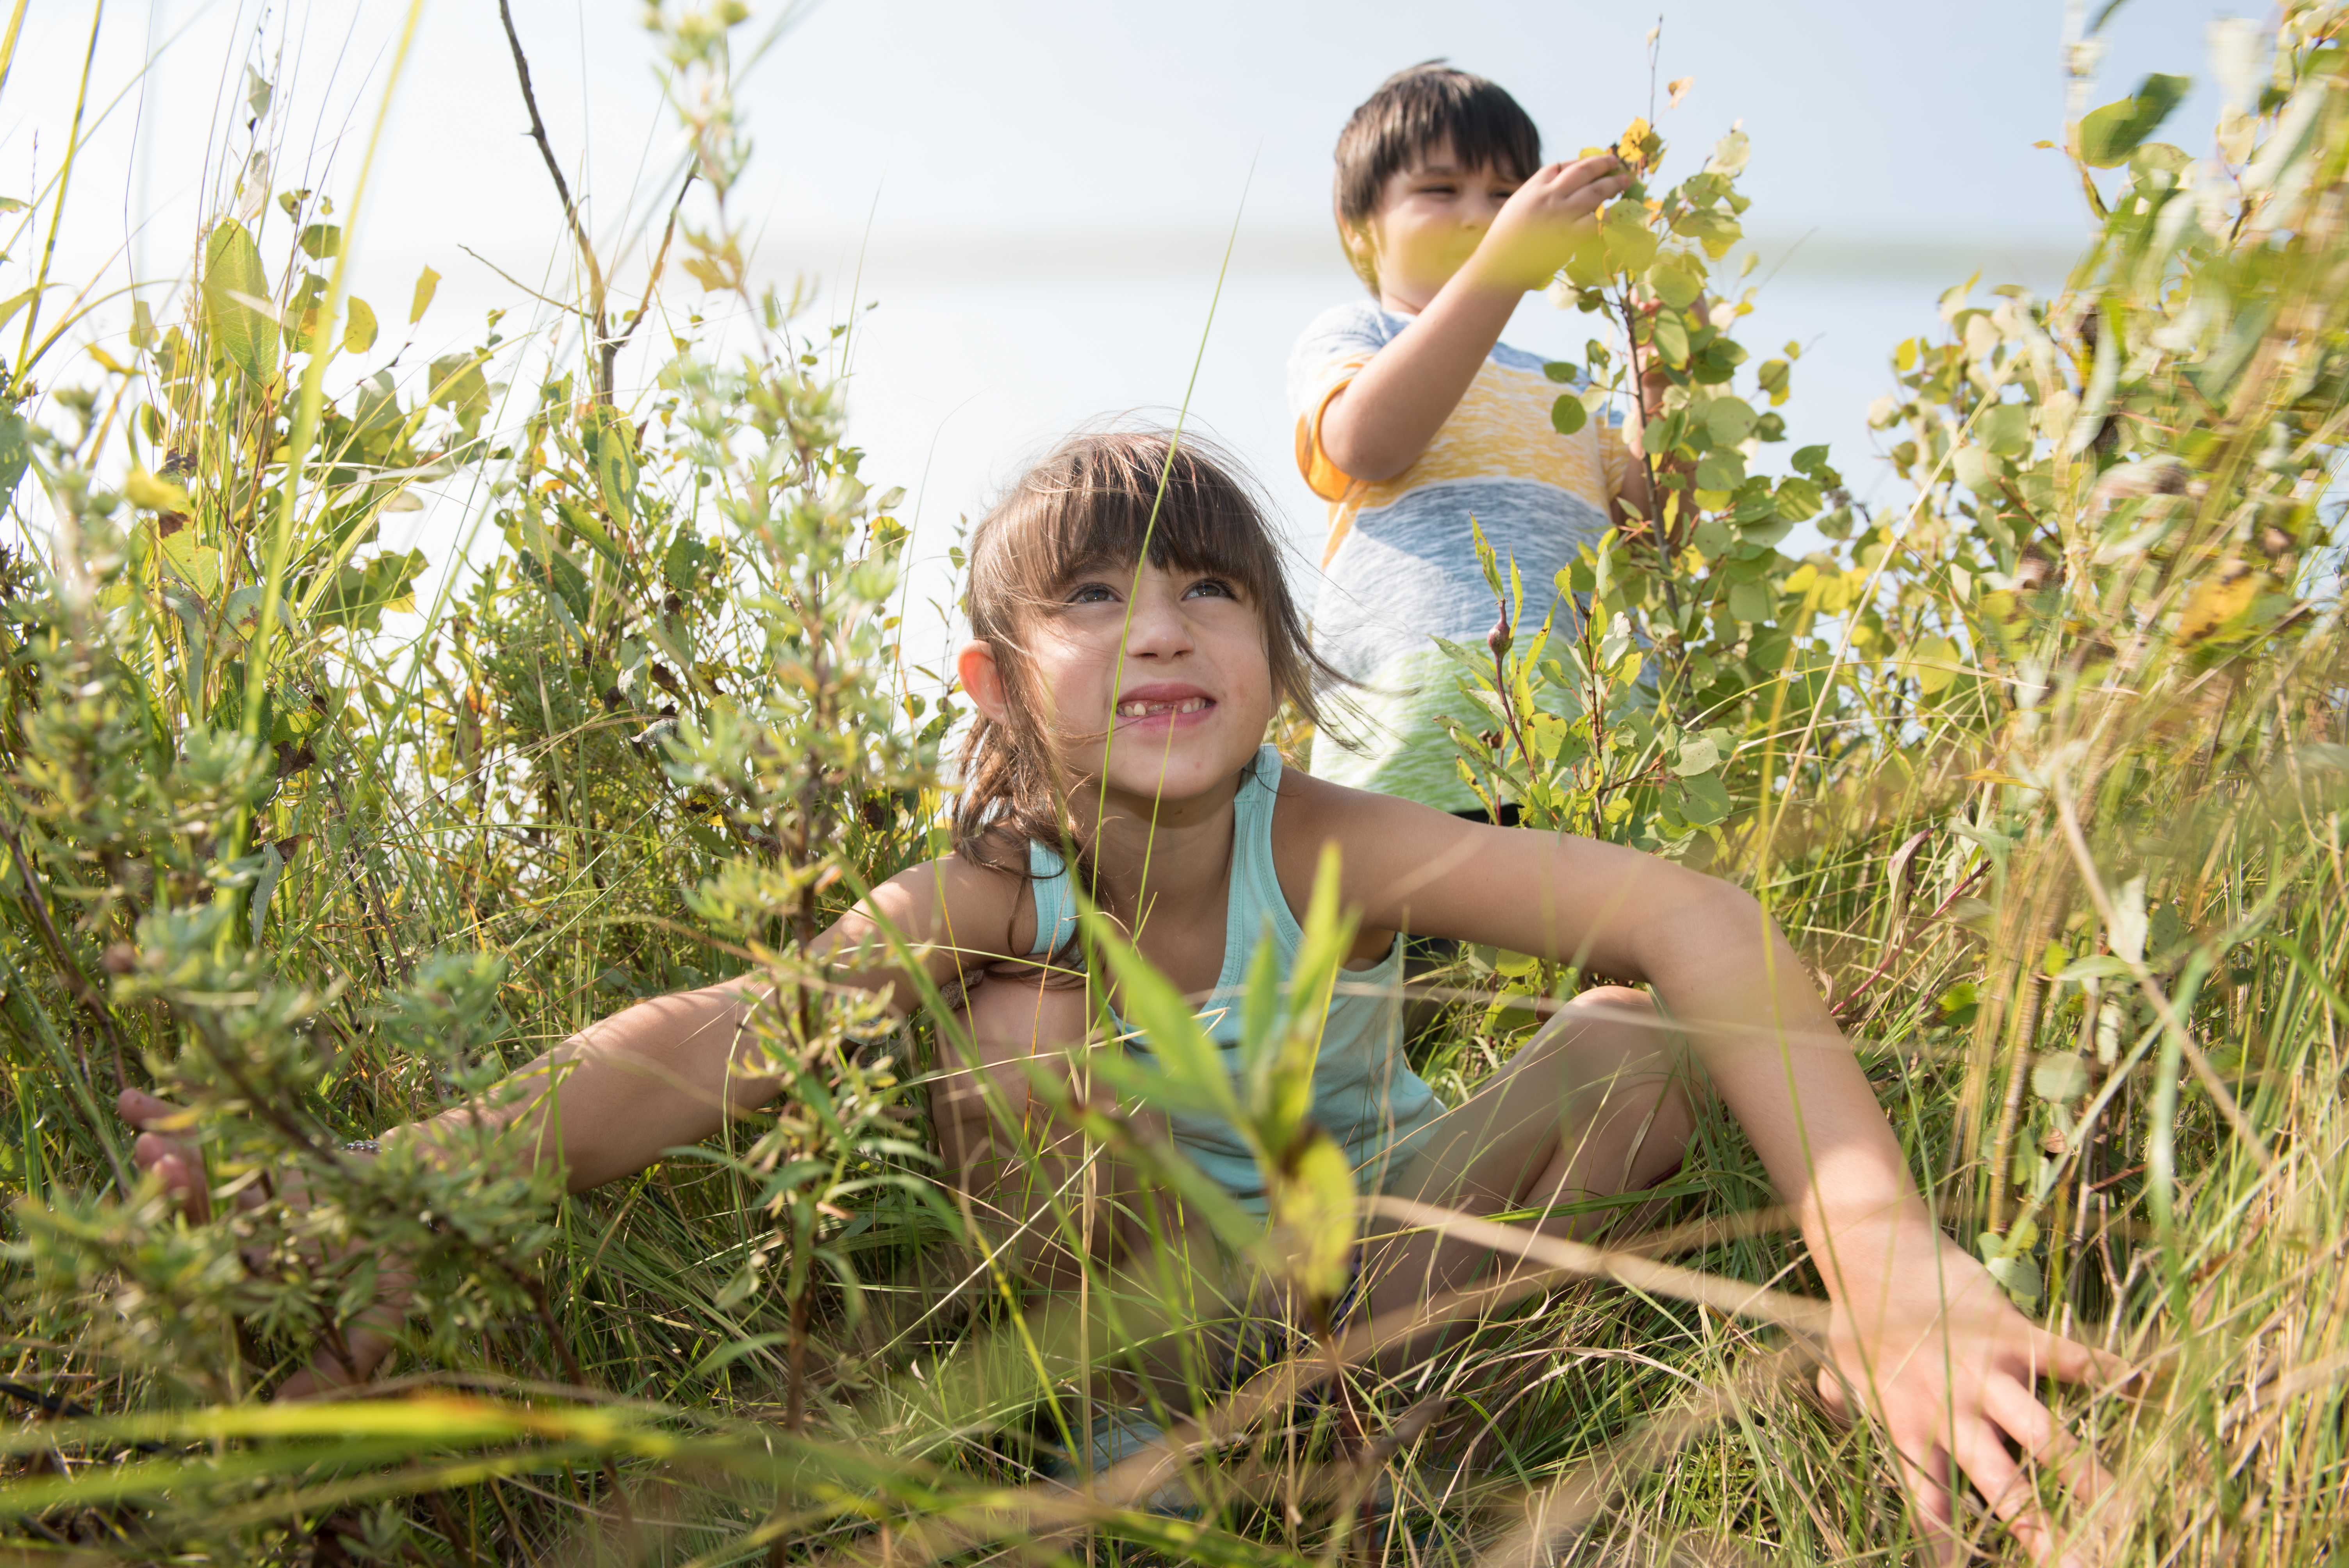 Children-at-Weston-Family-Tall-Grass-Interpretive-Centre-Thomas-Fricke